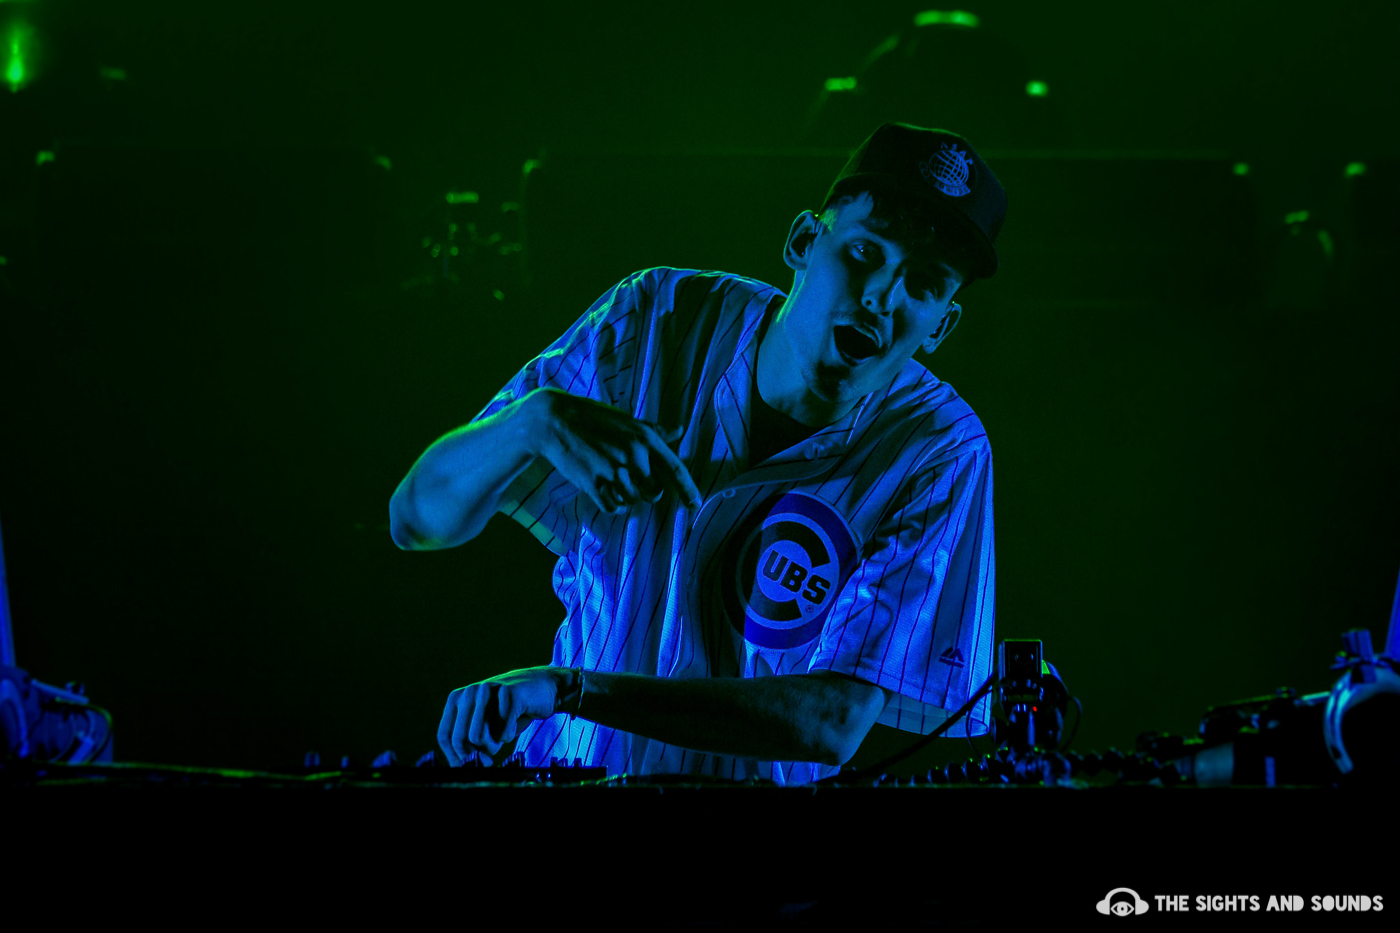 [TOUR RECAP] Griz's 'Good Will Prevail' Tour Gave America Hope When We Needed It Most